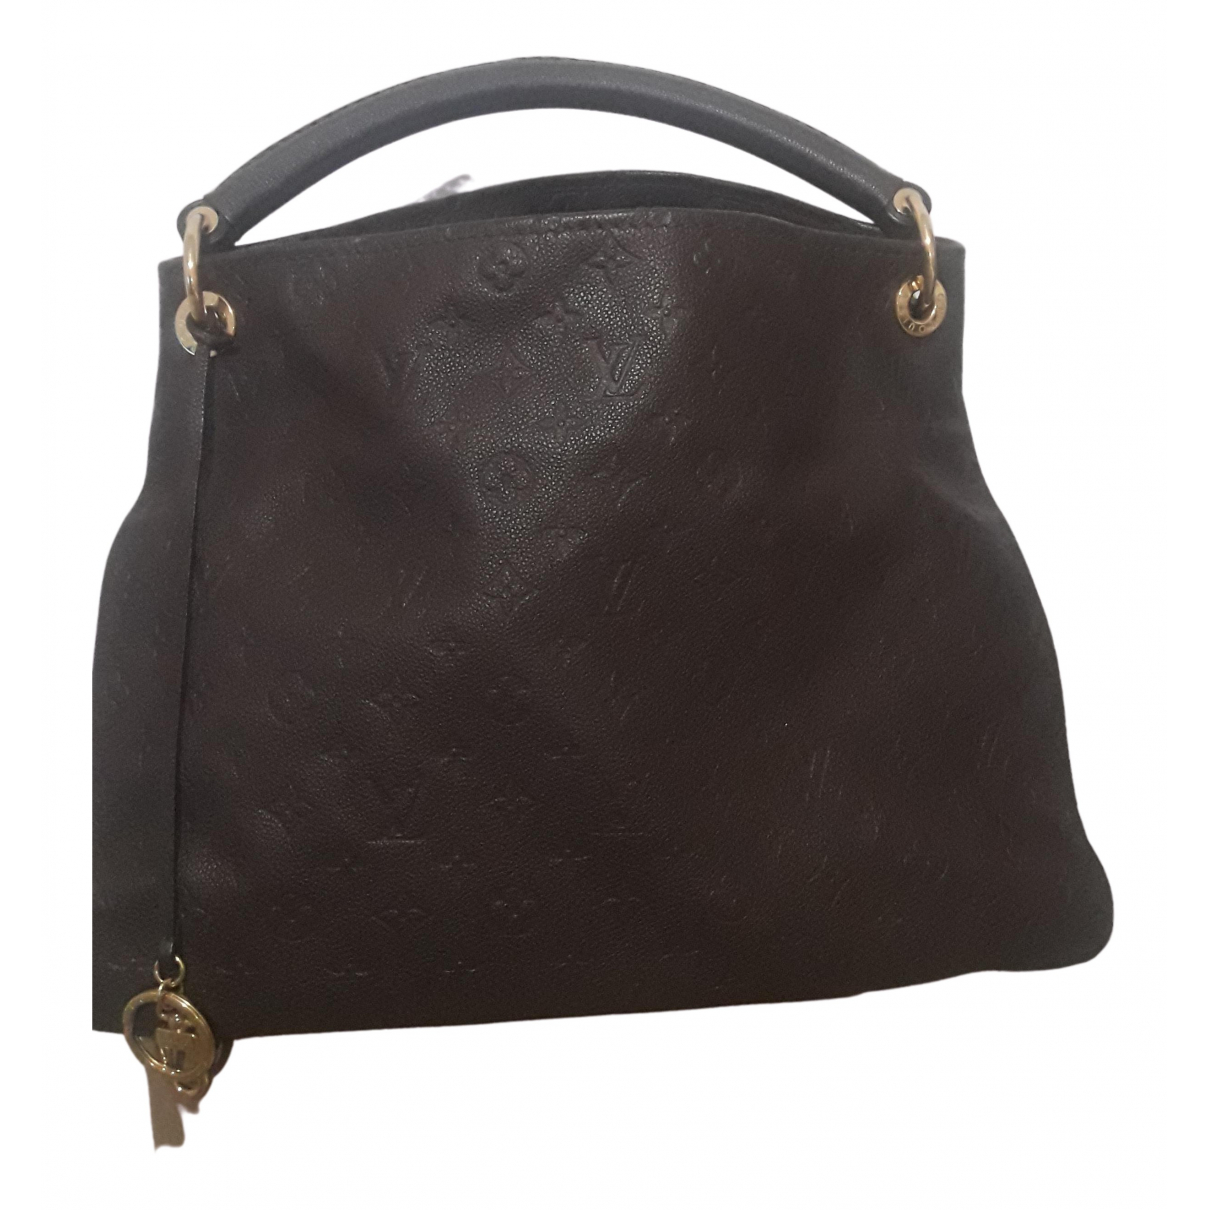 Louis Vuitton Artsy Brown Leather handbag for Women N